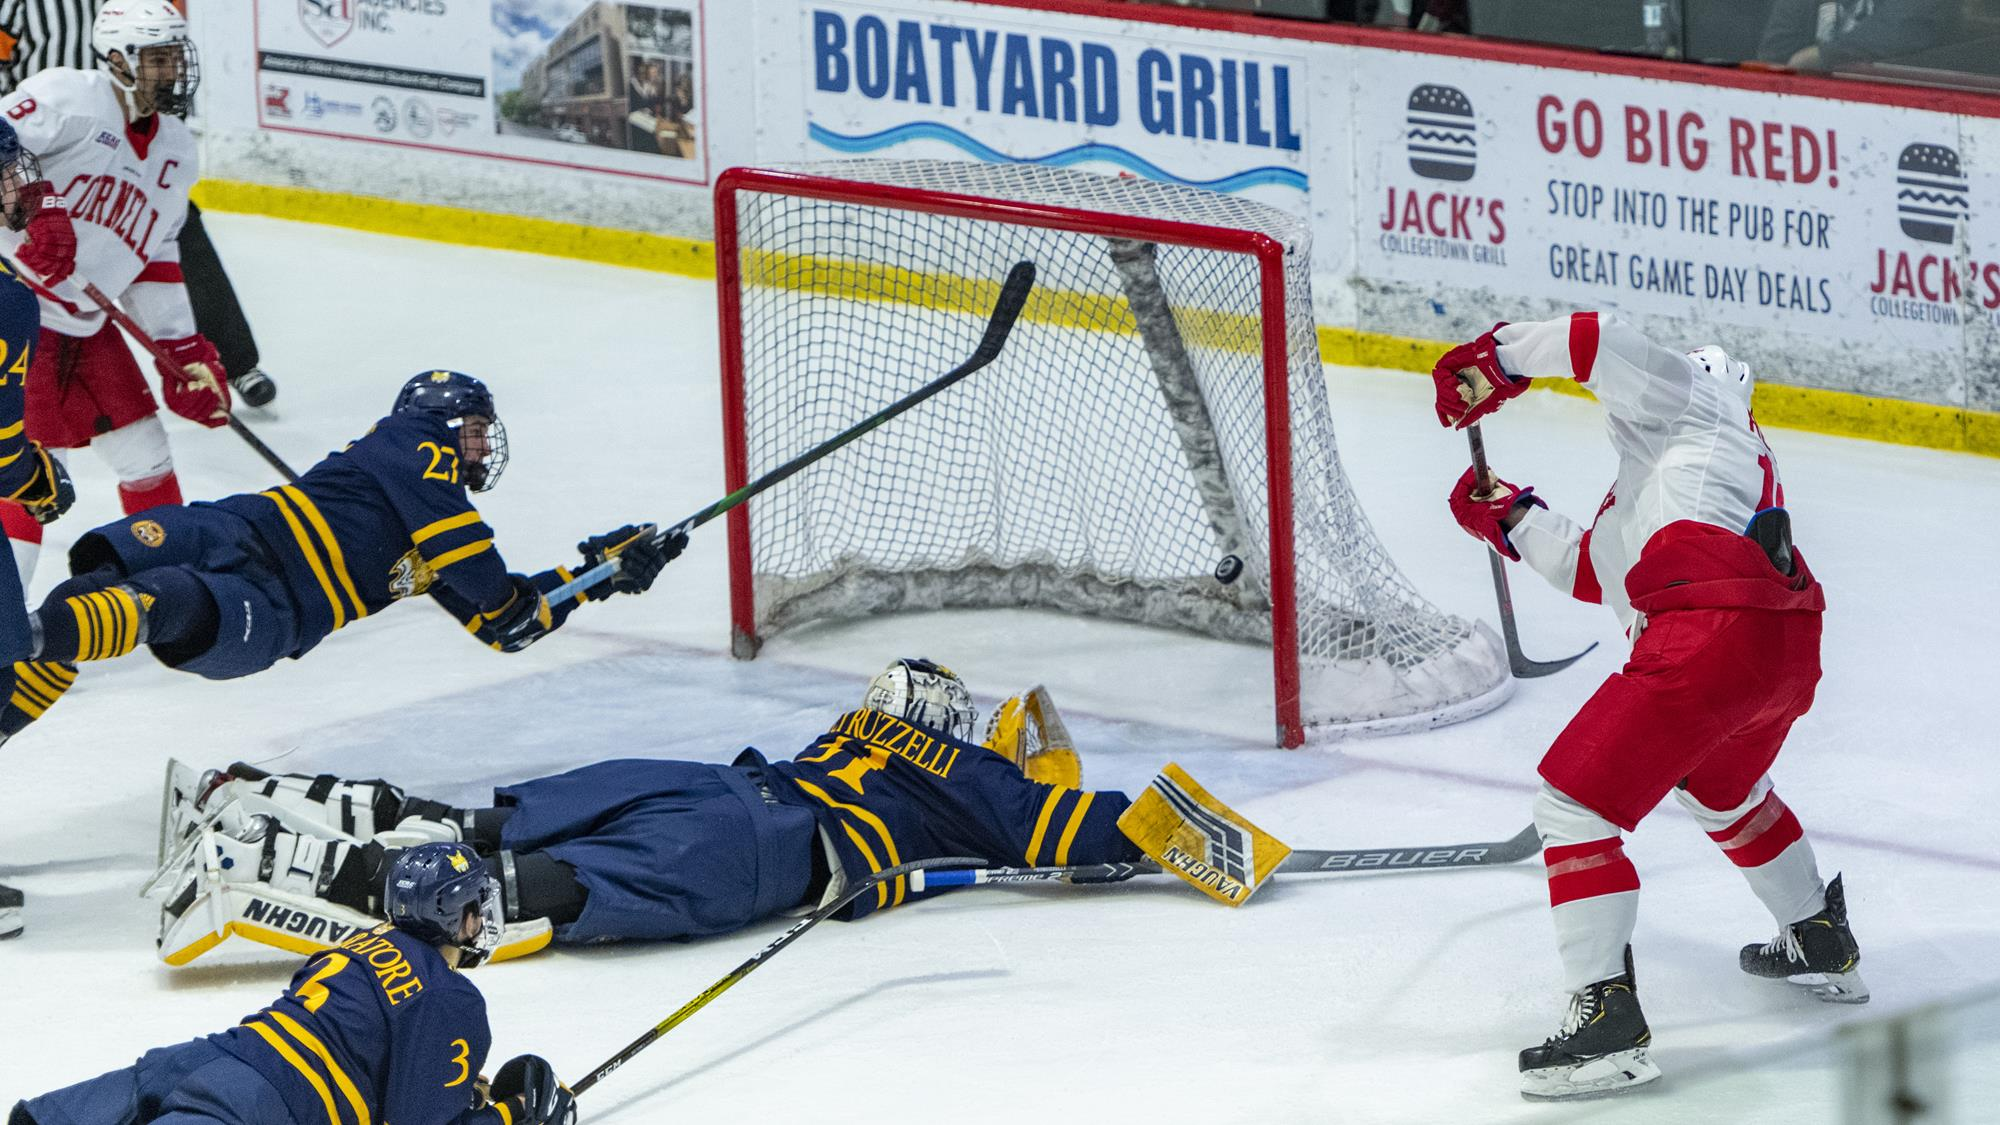 Michael Regush flips in the game-winning, power-play goal during the second period of the Cornell men's hockey team's 2-1 victory over Quinnipiac in an ECAC Hockey game on Nov. 22, 2019 at Lynah Rink in Ithaca, N.Y. (Eldon Lindsay/Cornell Athletics)